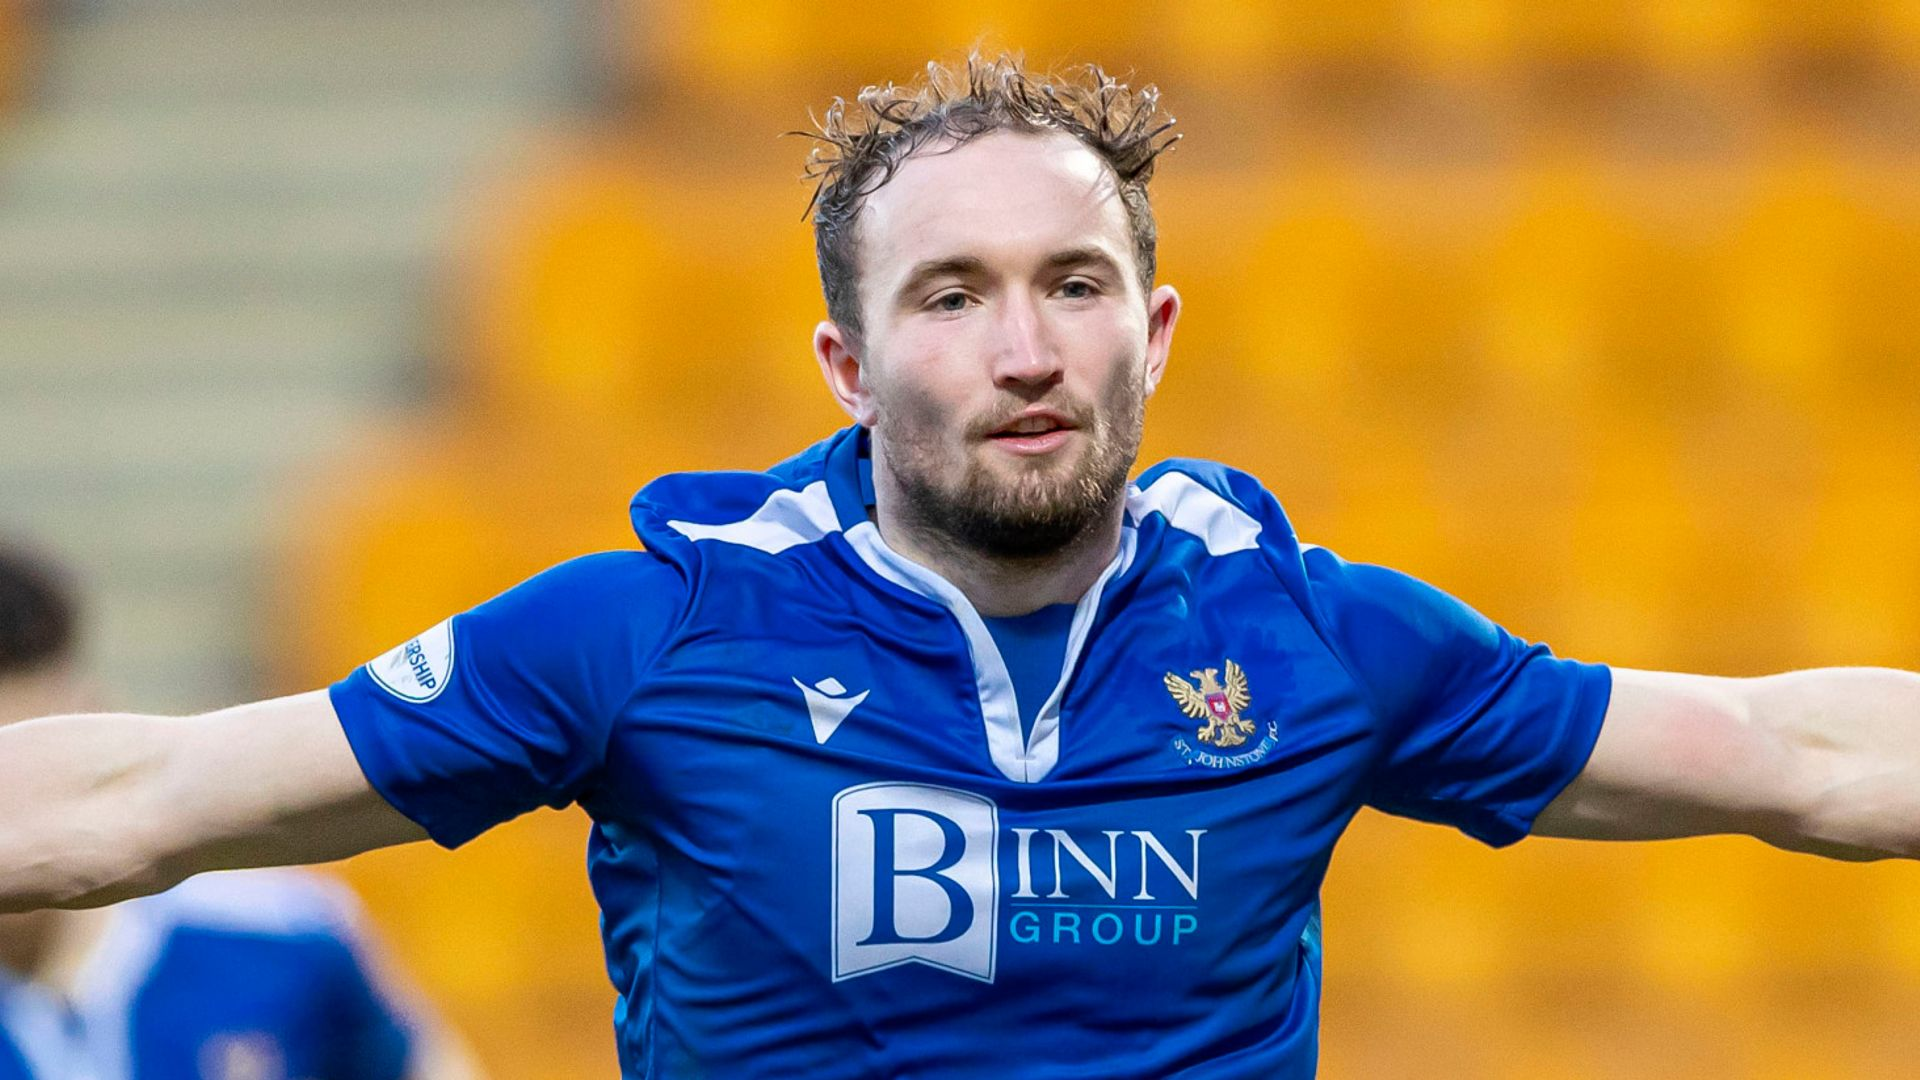 Kane ends St Johnstone's 10-game winless streak